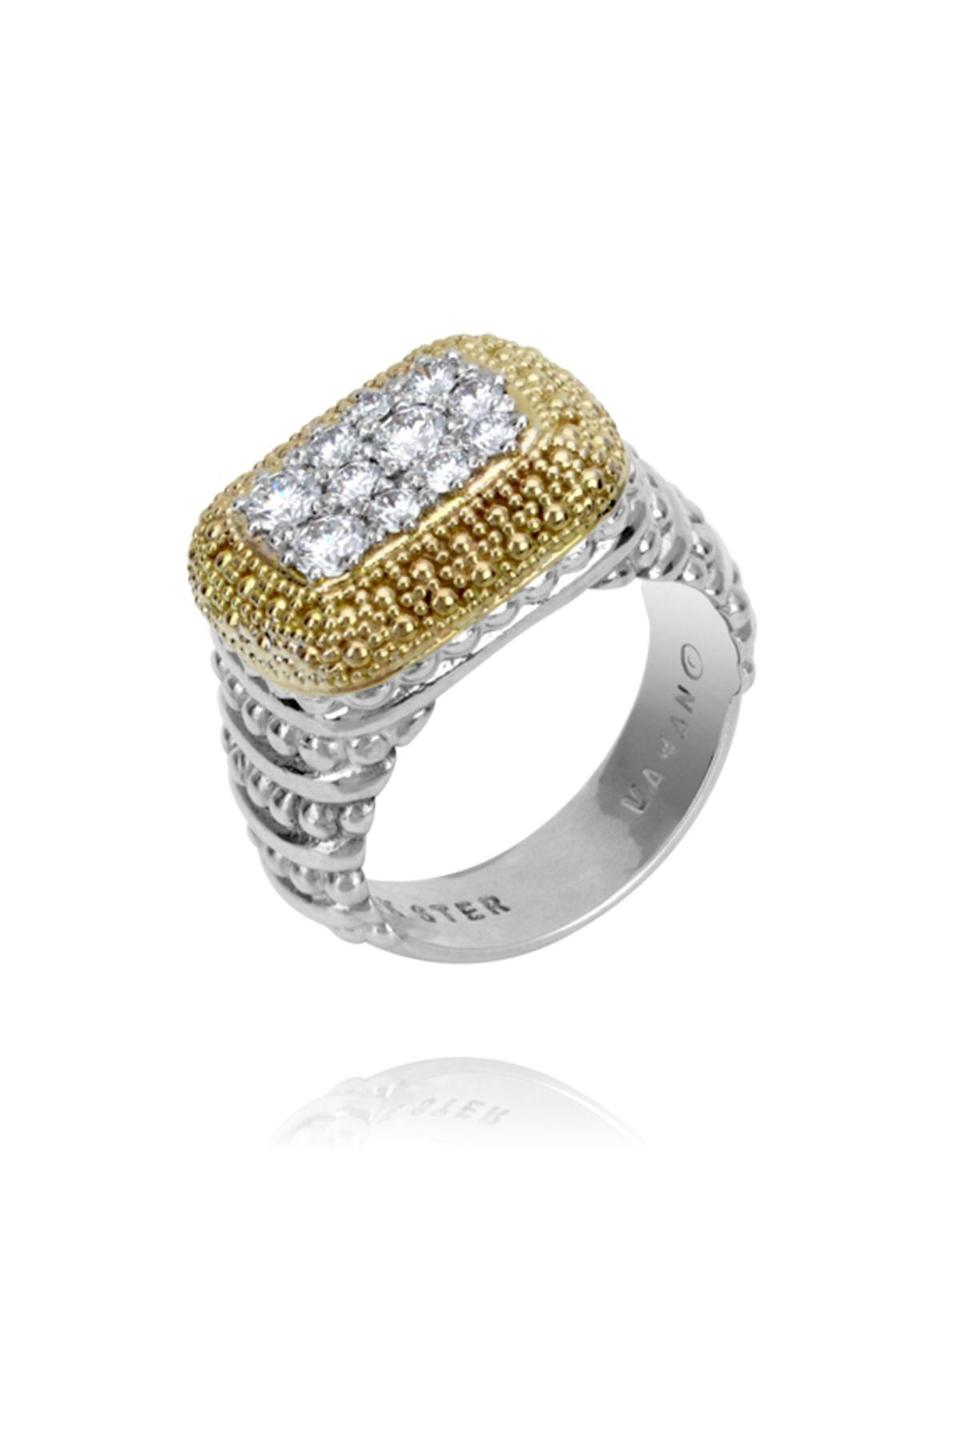 """<p><strong>Vahan</strong></p><p>vahanjewelry.com</p><p><strong>$4315.00</strong></p><p><a href=""""https://www.vahanjewelry.com/jewelry/40984/"""" rel=""""nofollow noopener"""" target=""""_blank"""" data-ylk=""""slk:Shop Now"""" class=""""link rapid-noclick-resp"""">Shop Now</a></p><p>For women who love to mix metals, this ring means she never has to choose. </p>"""